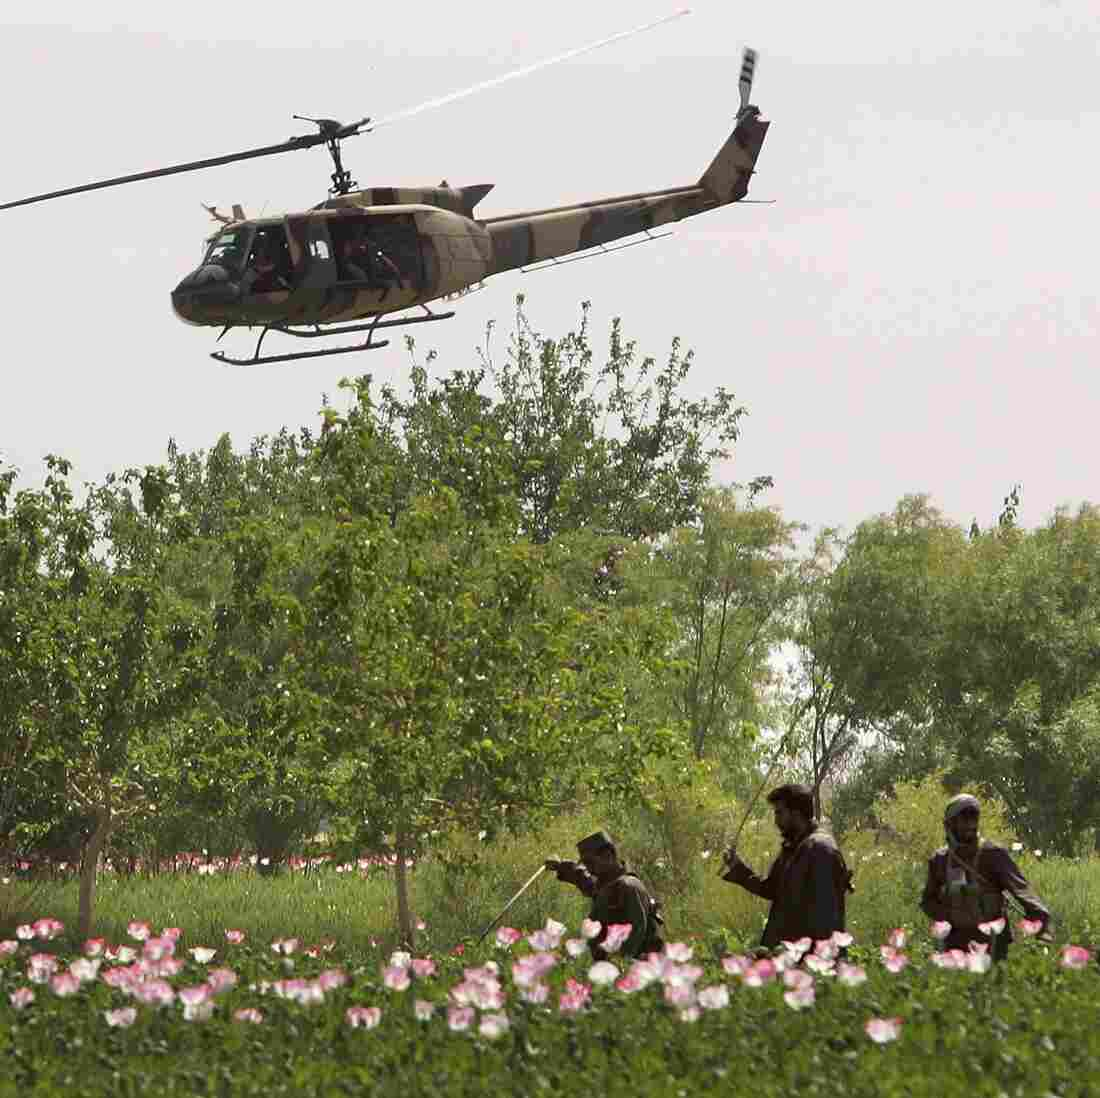 A helicopter from the American security contractor DynCorp provides air support as members of an Afghan eradication force plow opium poppies on April 3, 2006, in the Helmand province, Afghanistan.